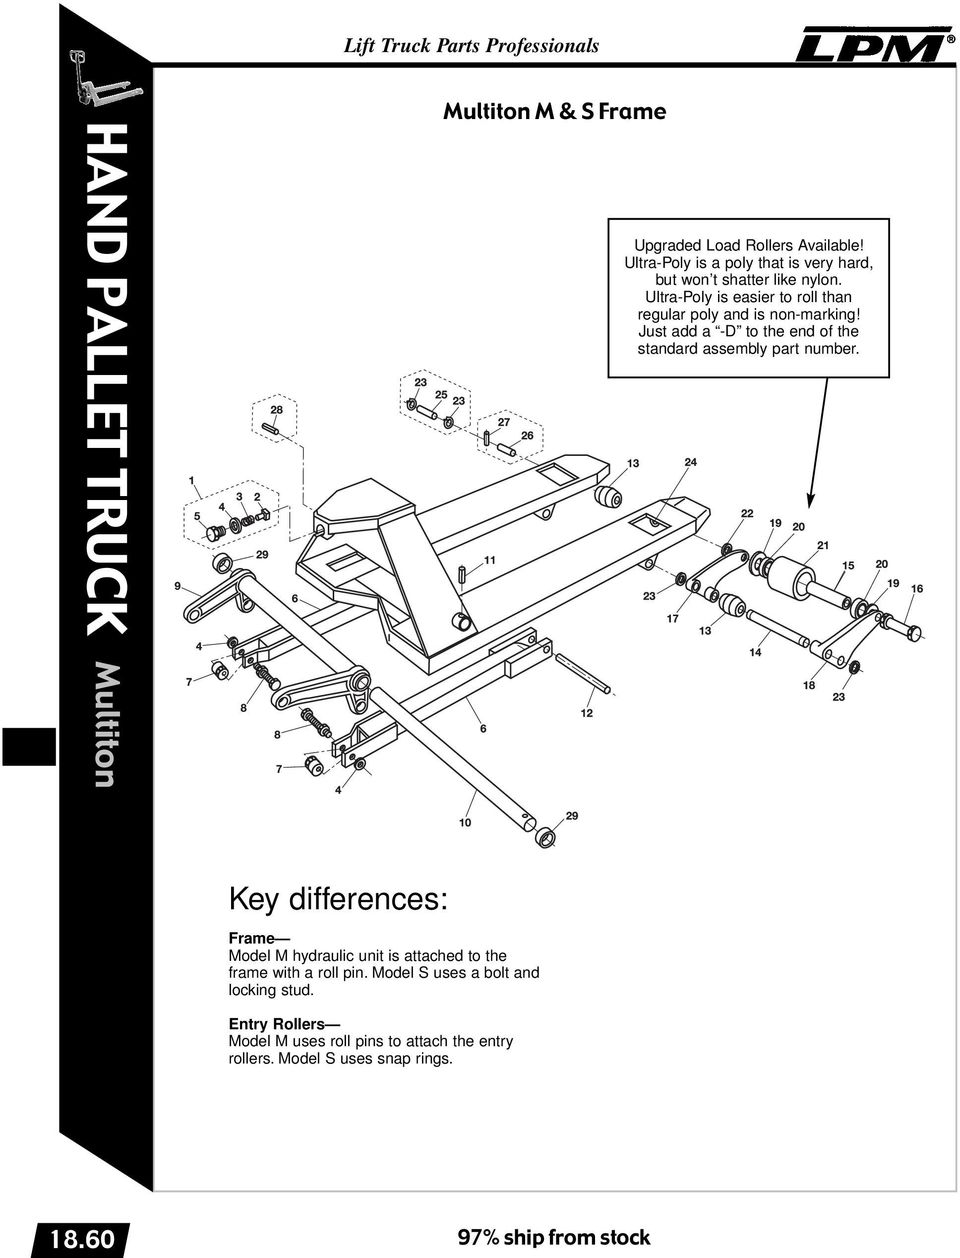 Ultra-Poly is easier to roll than regular poly and is non-marking! Just add a -D to the end of the standard assembly part number.